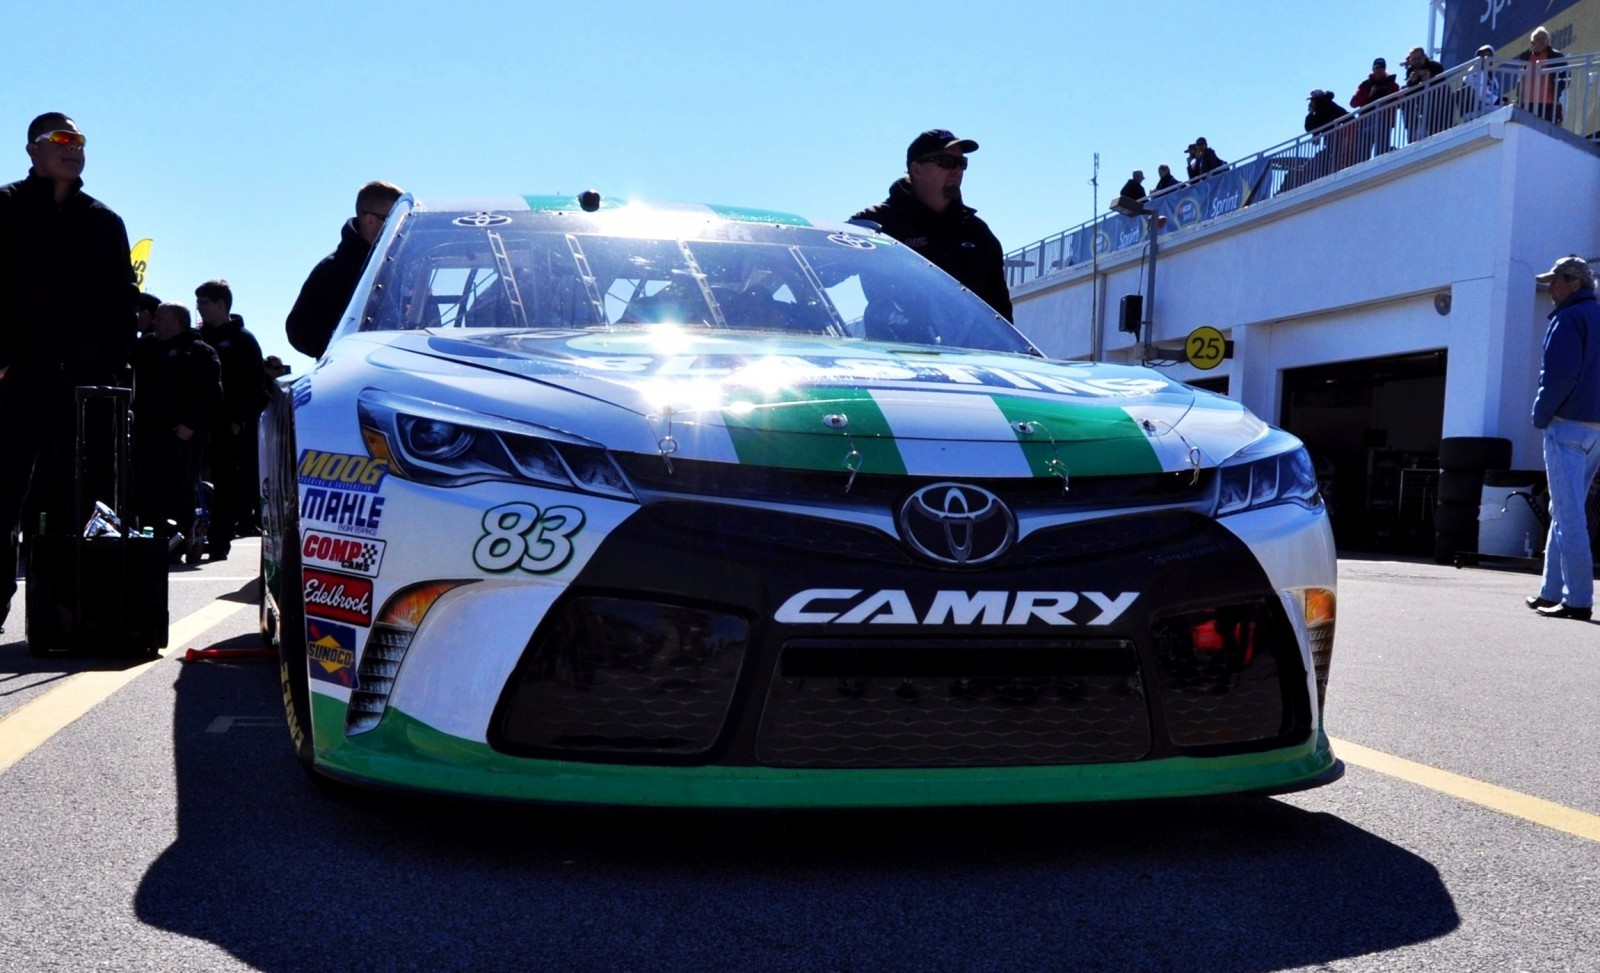 2015 Toyota Camry - DAYTONA 500 Official Pace Car 5